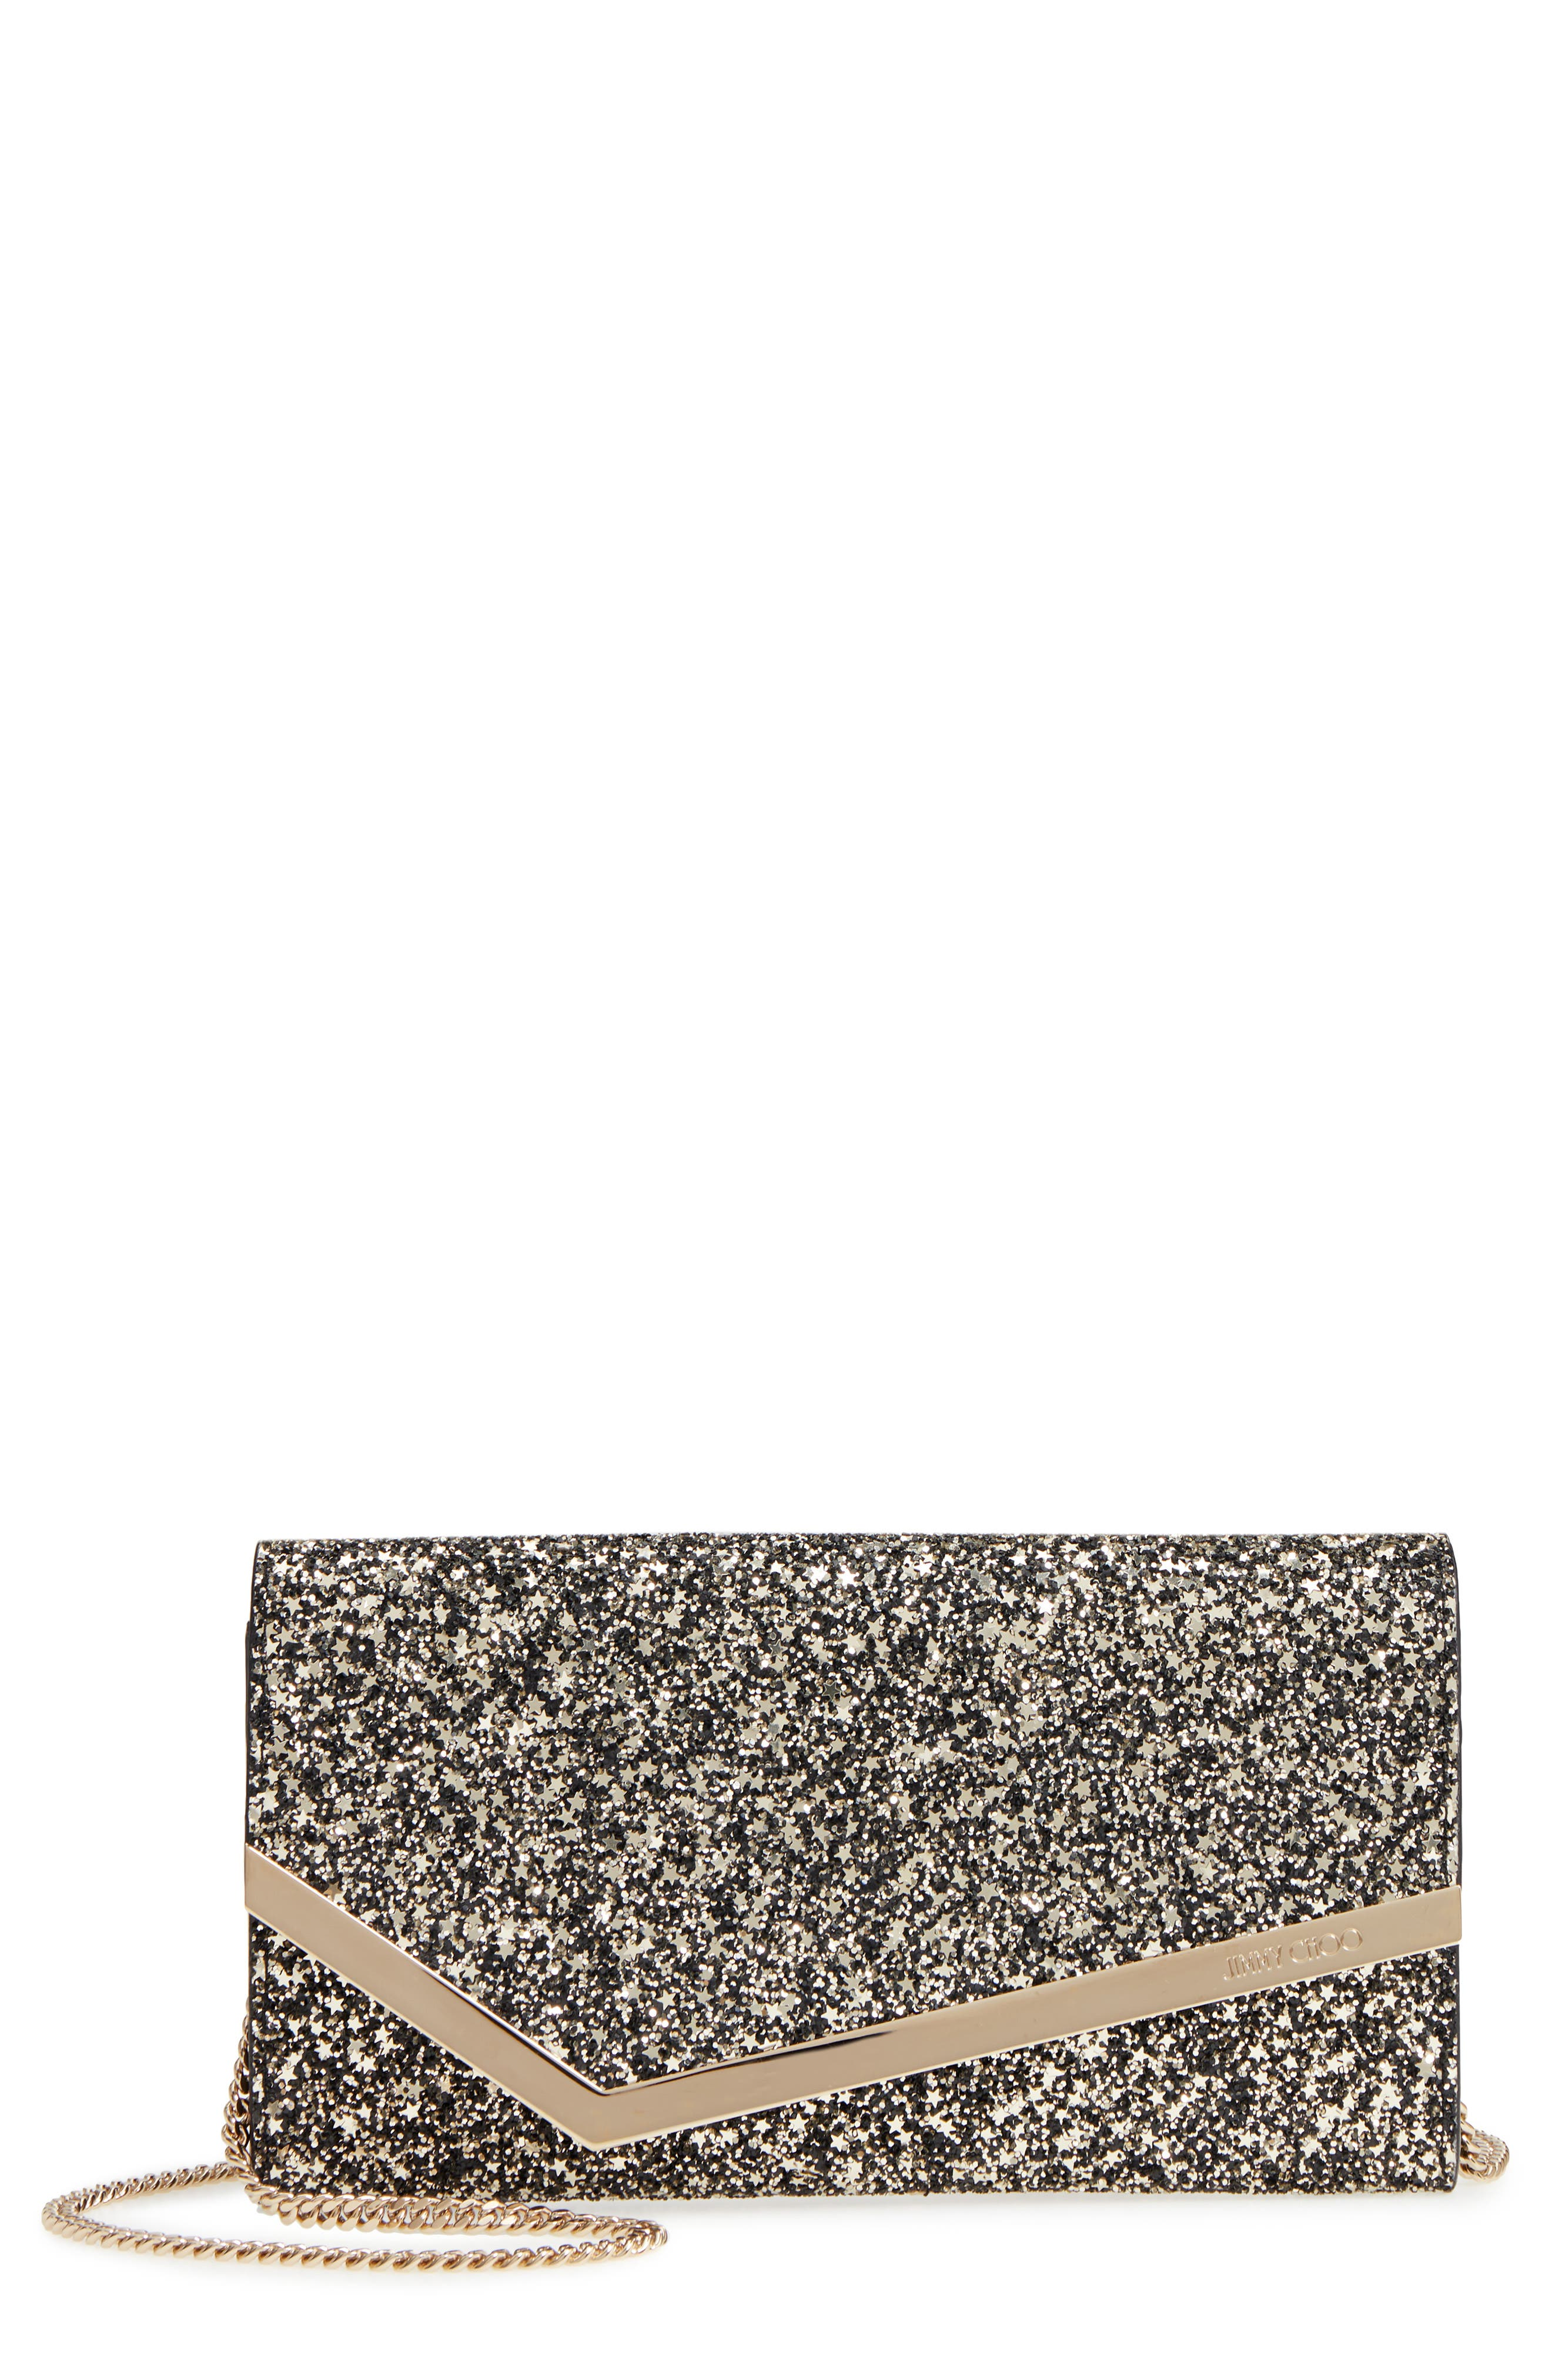 Emmie Star Glitter Clutch,                             Main thumbnail 1, color,                             710